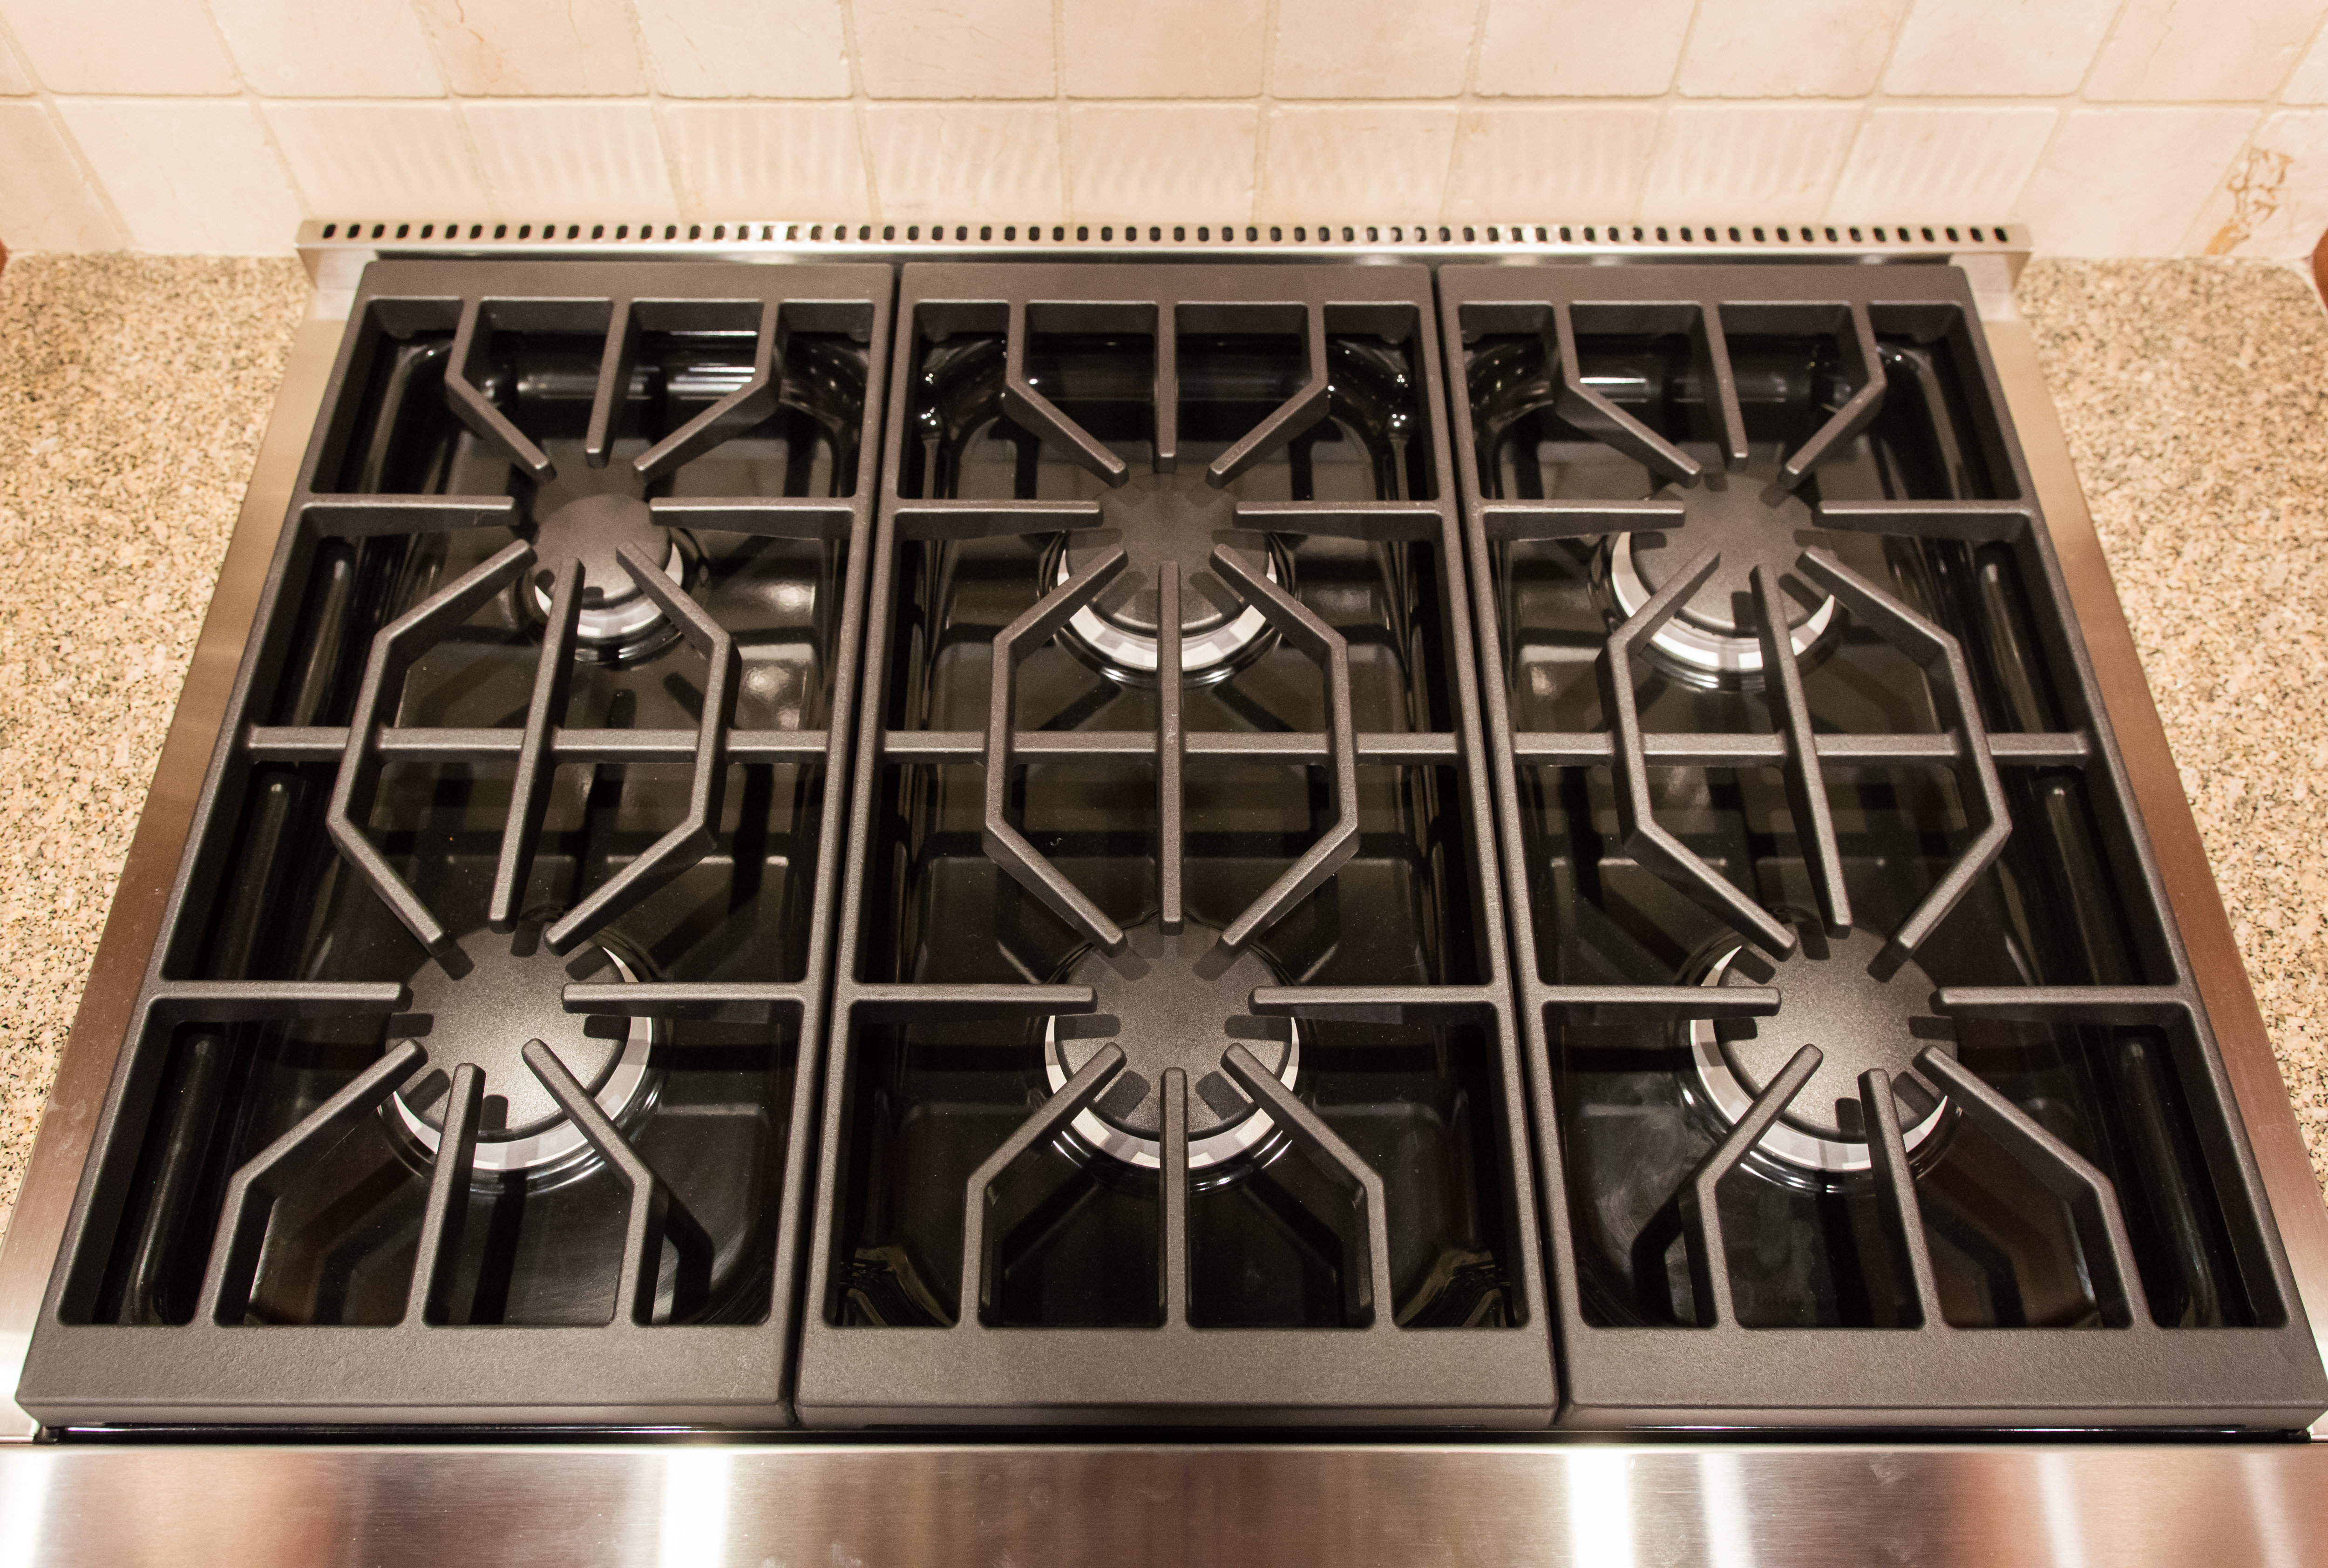 cooktop and grates